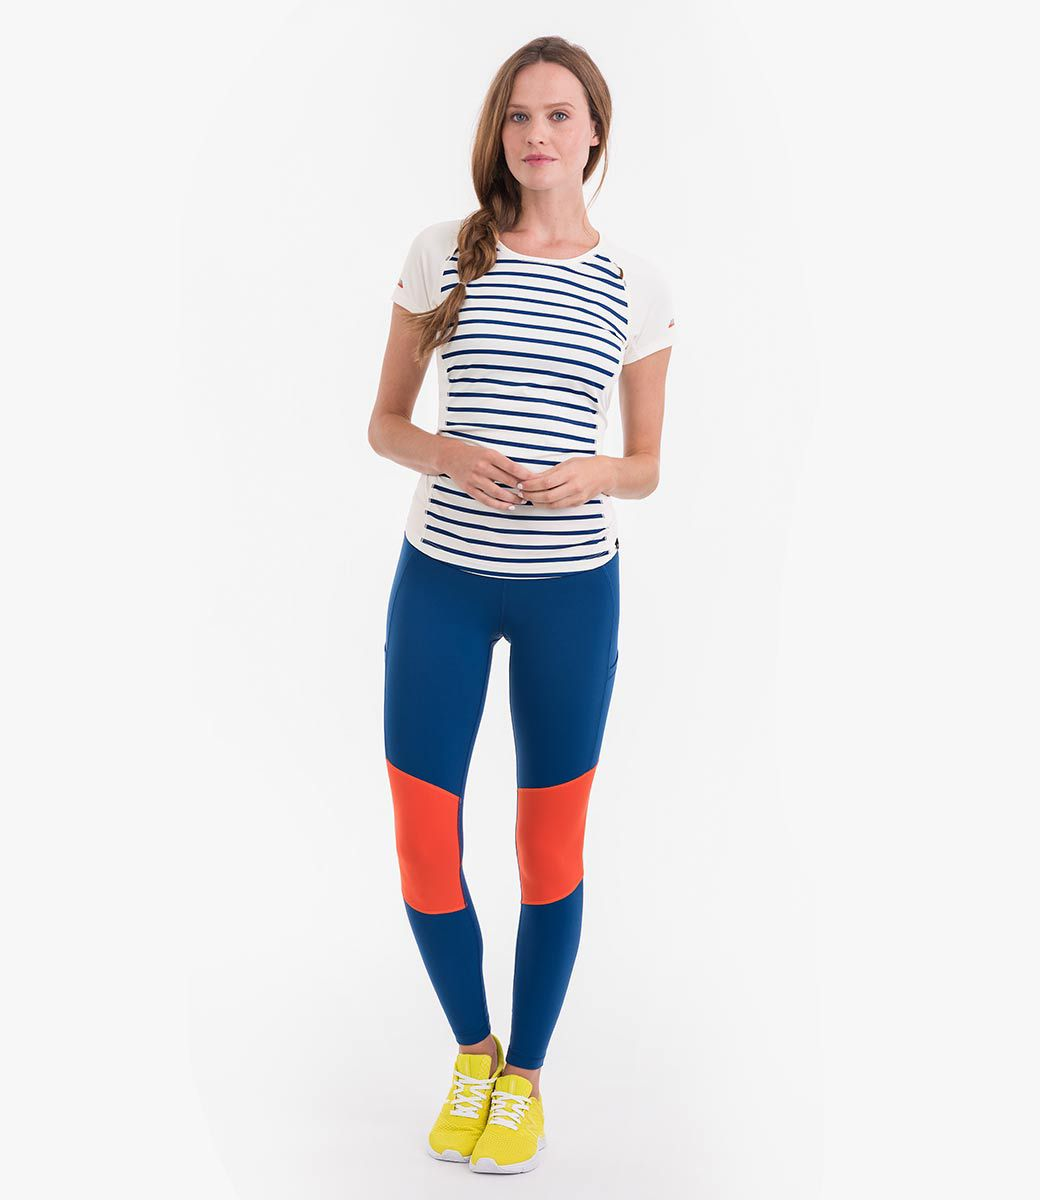 New Balance US Womens October JCrew Outfit 14,